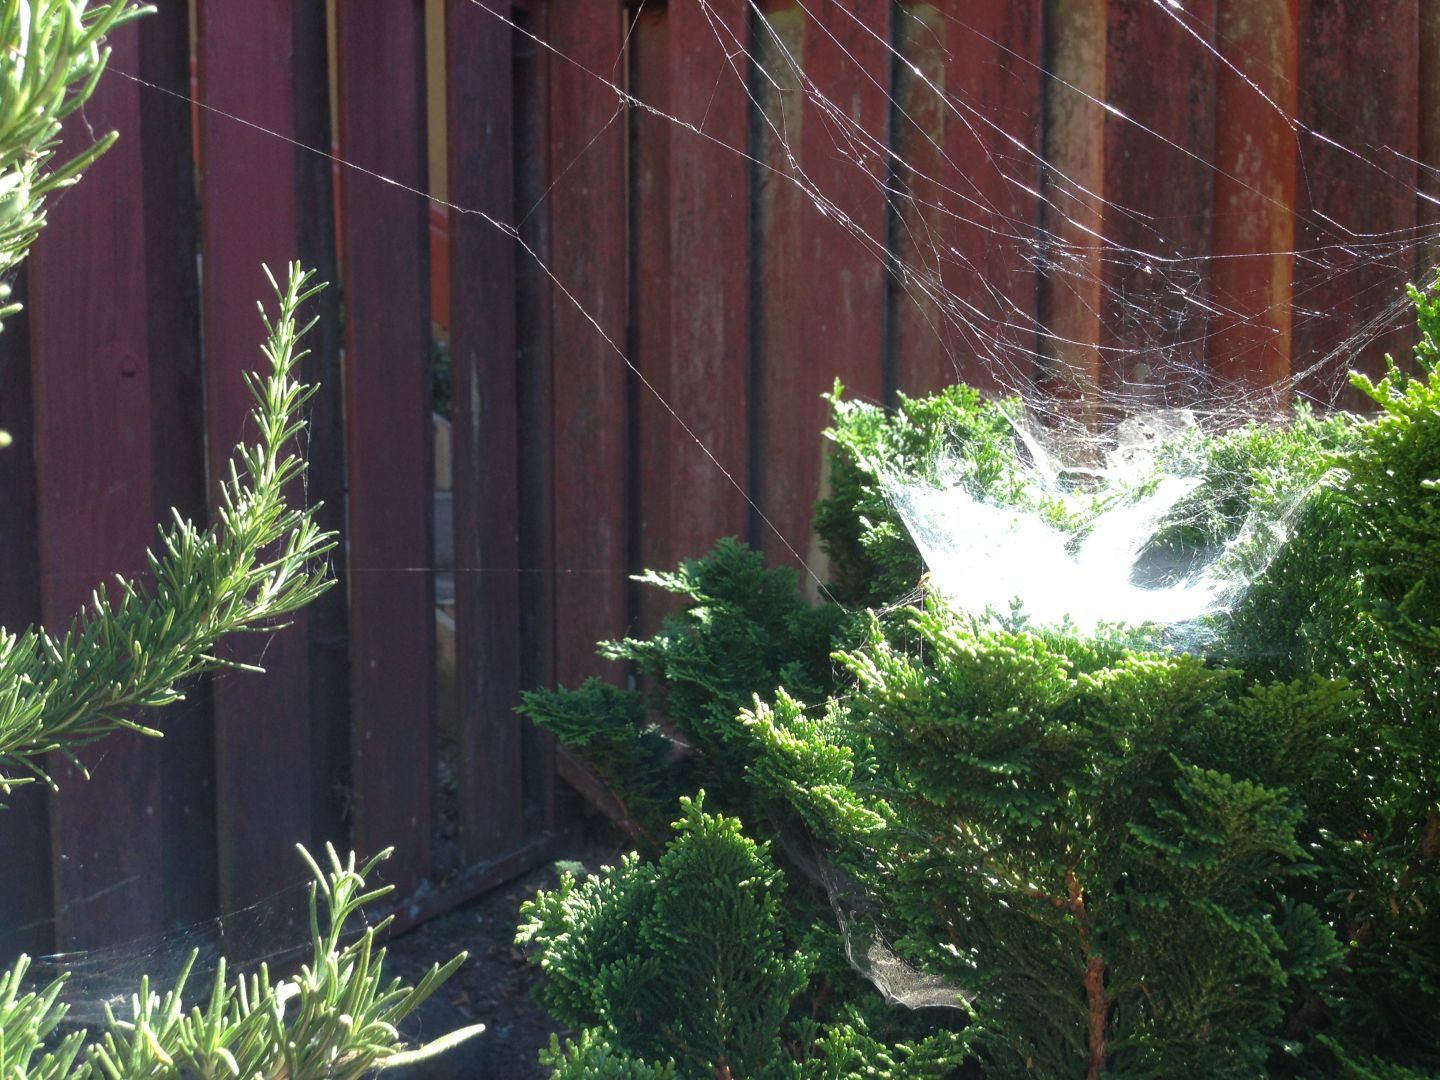 Hot weather means lots of industrious spiders, producing cobwebs like the ones in this Berkeley yard on Sept. 9, 2015.